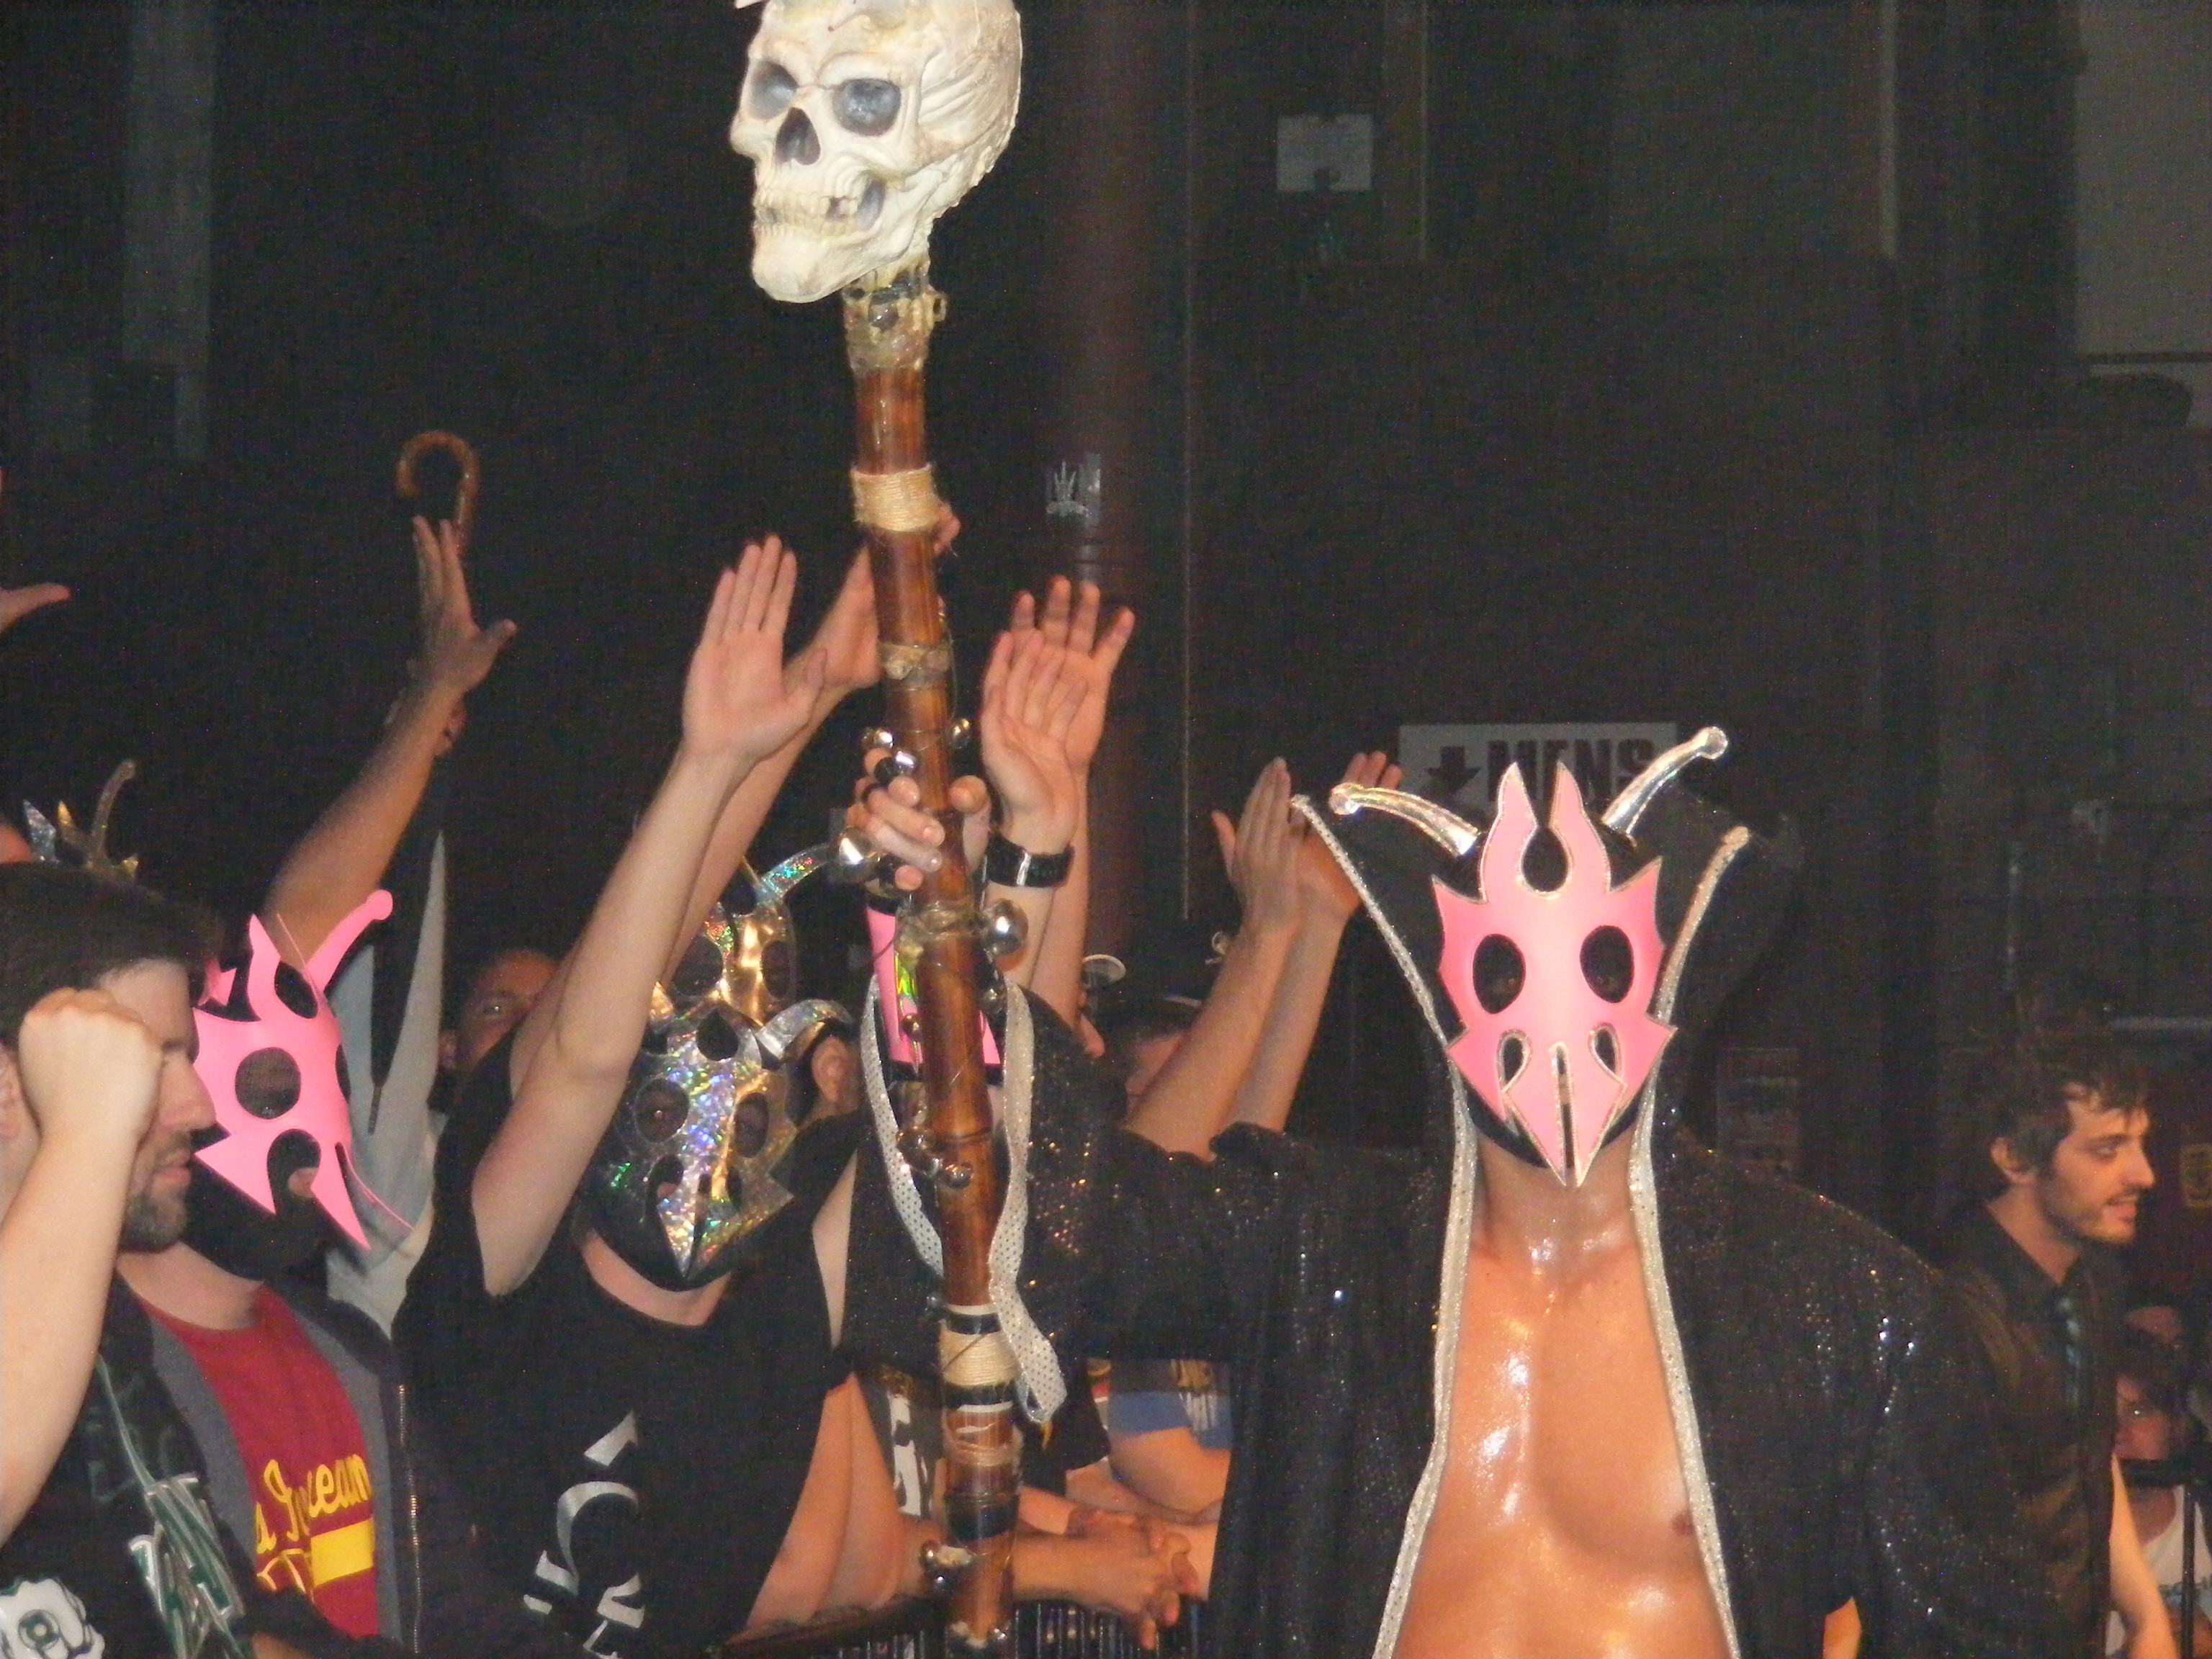 UltraMantis Black 2010 Fear of a Ghost Interview: UltraMantis Black